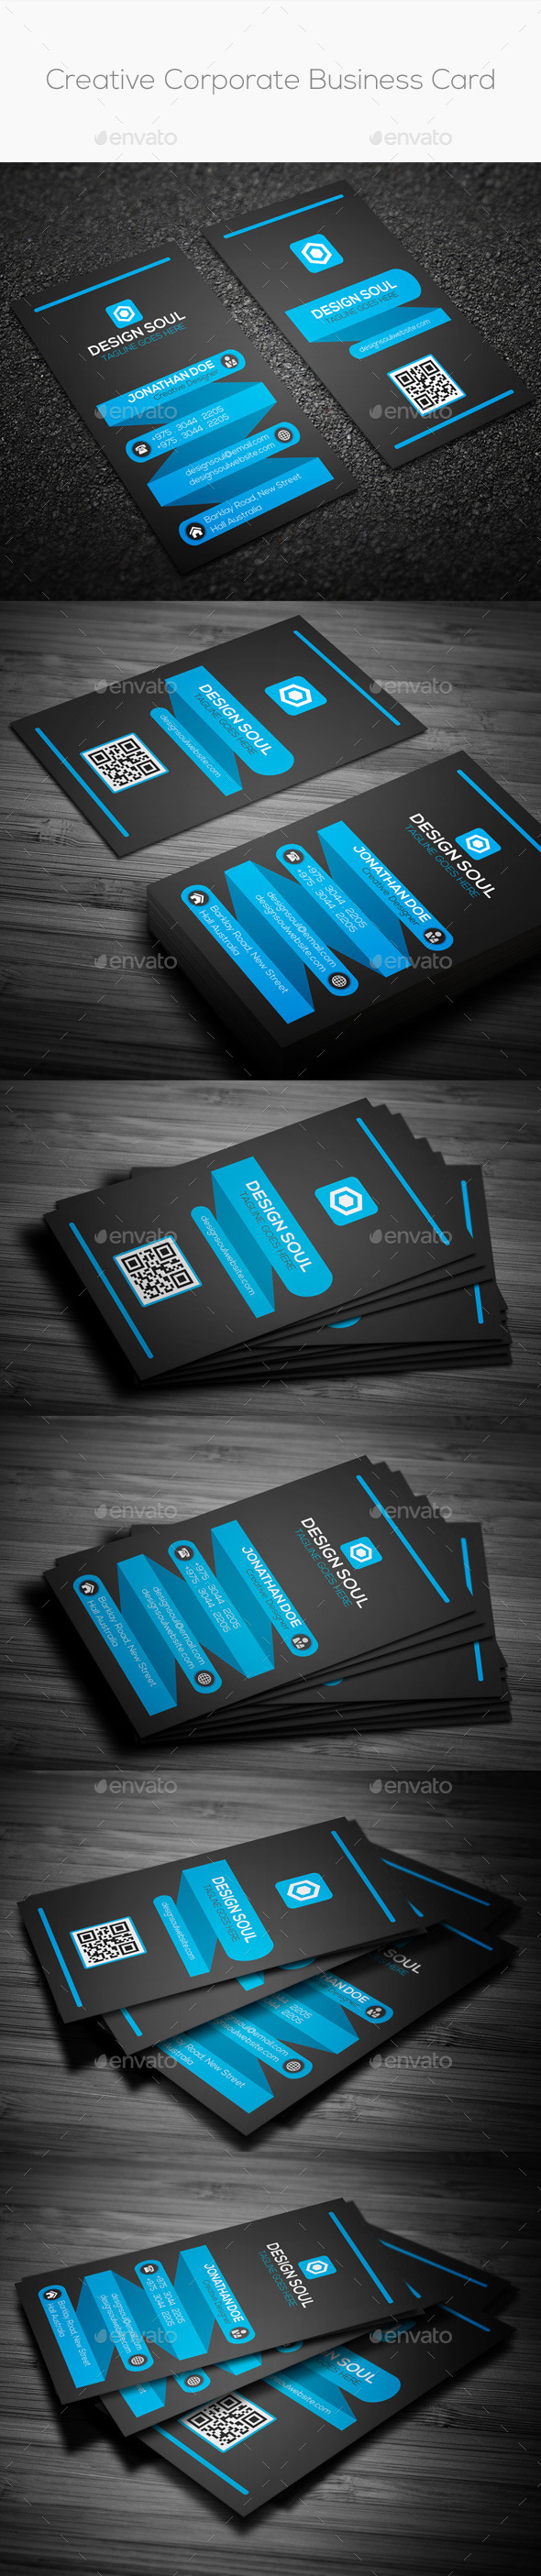 GraphicRiver Creative Corporate Business Card 8846569